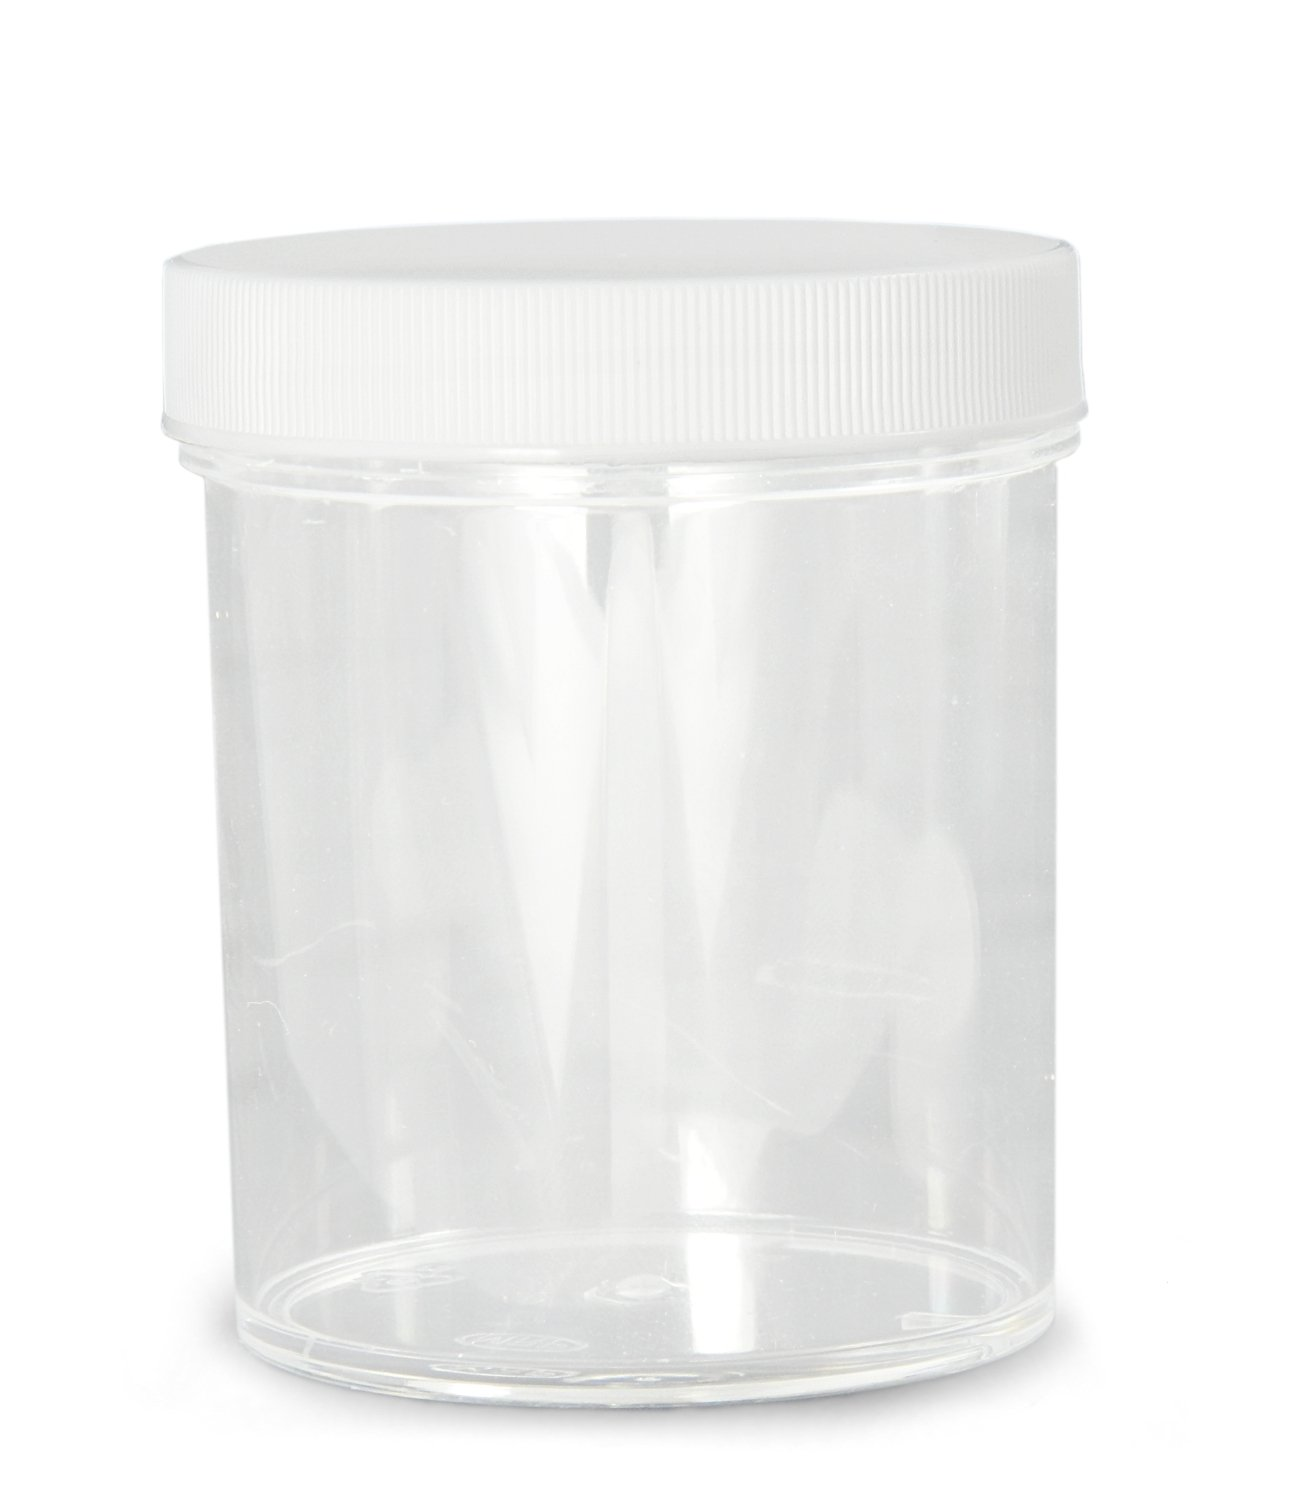 Case of 48 Clear Qorpak PLC-03724 Polystyrene Jar with 53-400 White Polypropylene SturdeeSeal Polyethylene Foam Cap 52mm OD x 46mm Height 2oz Capacity